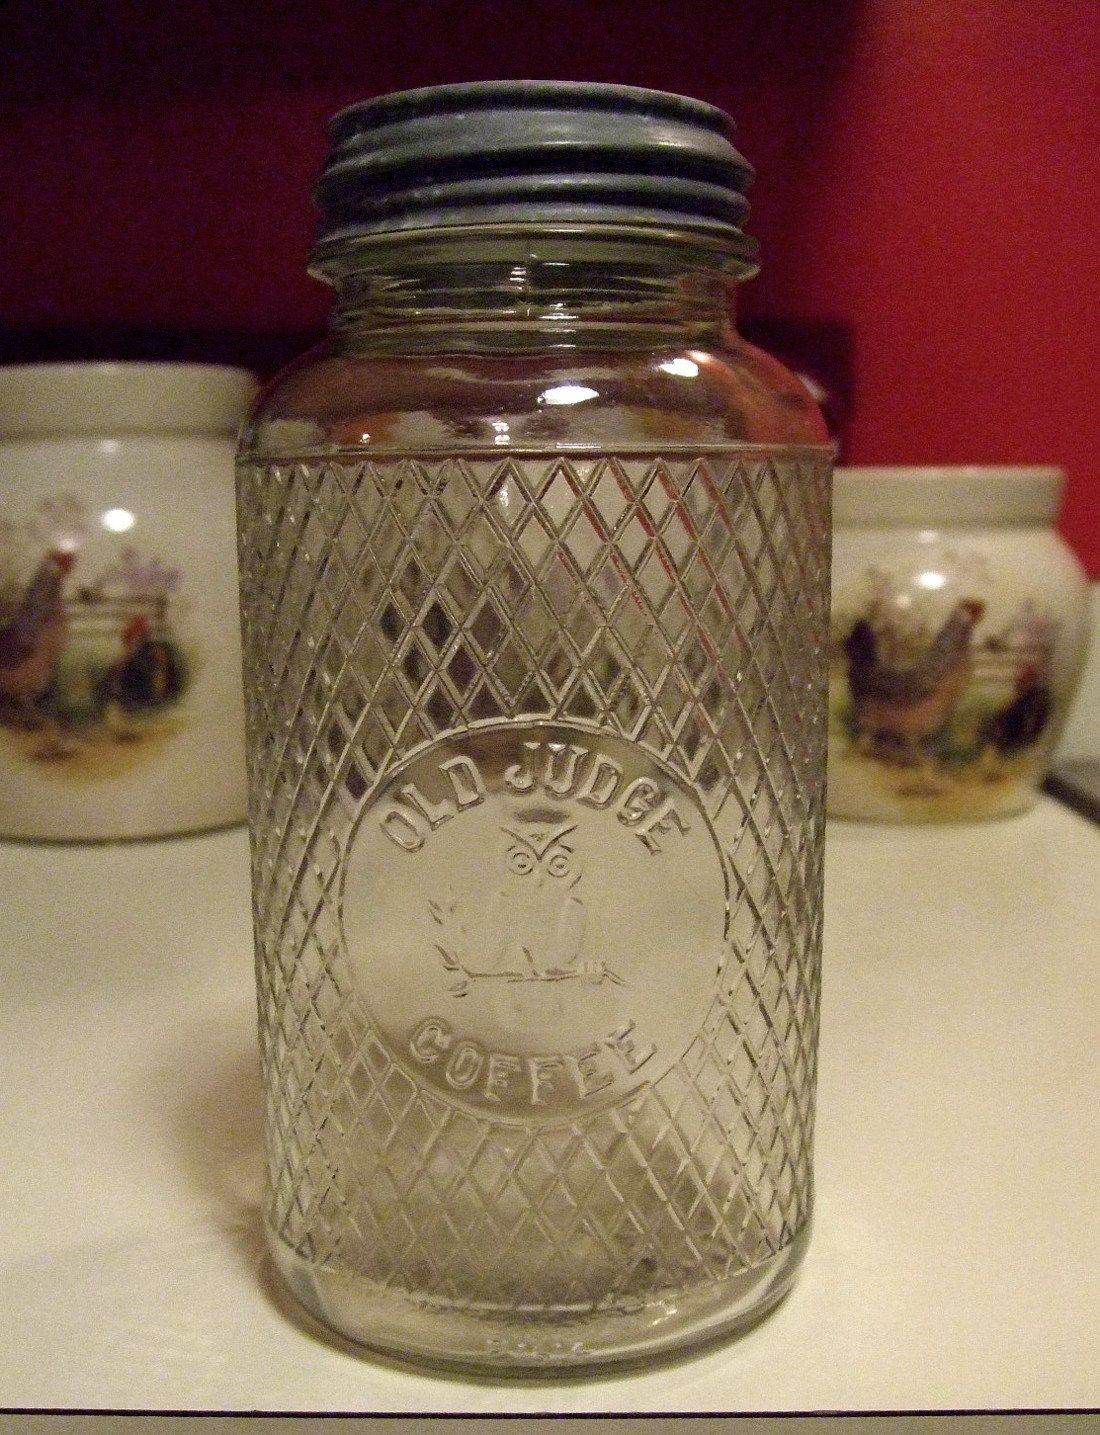 Anitque Old Judge Coffee Jar Owl Branch Picture Canister Jar